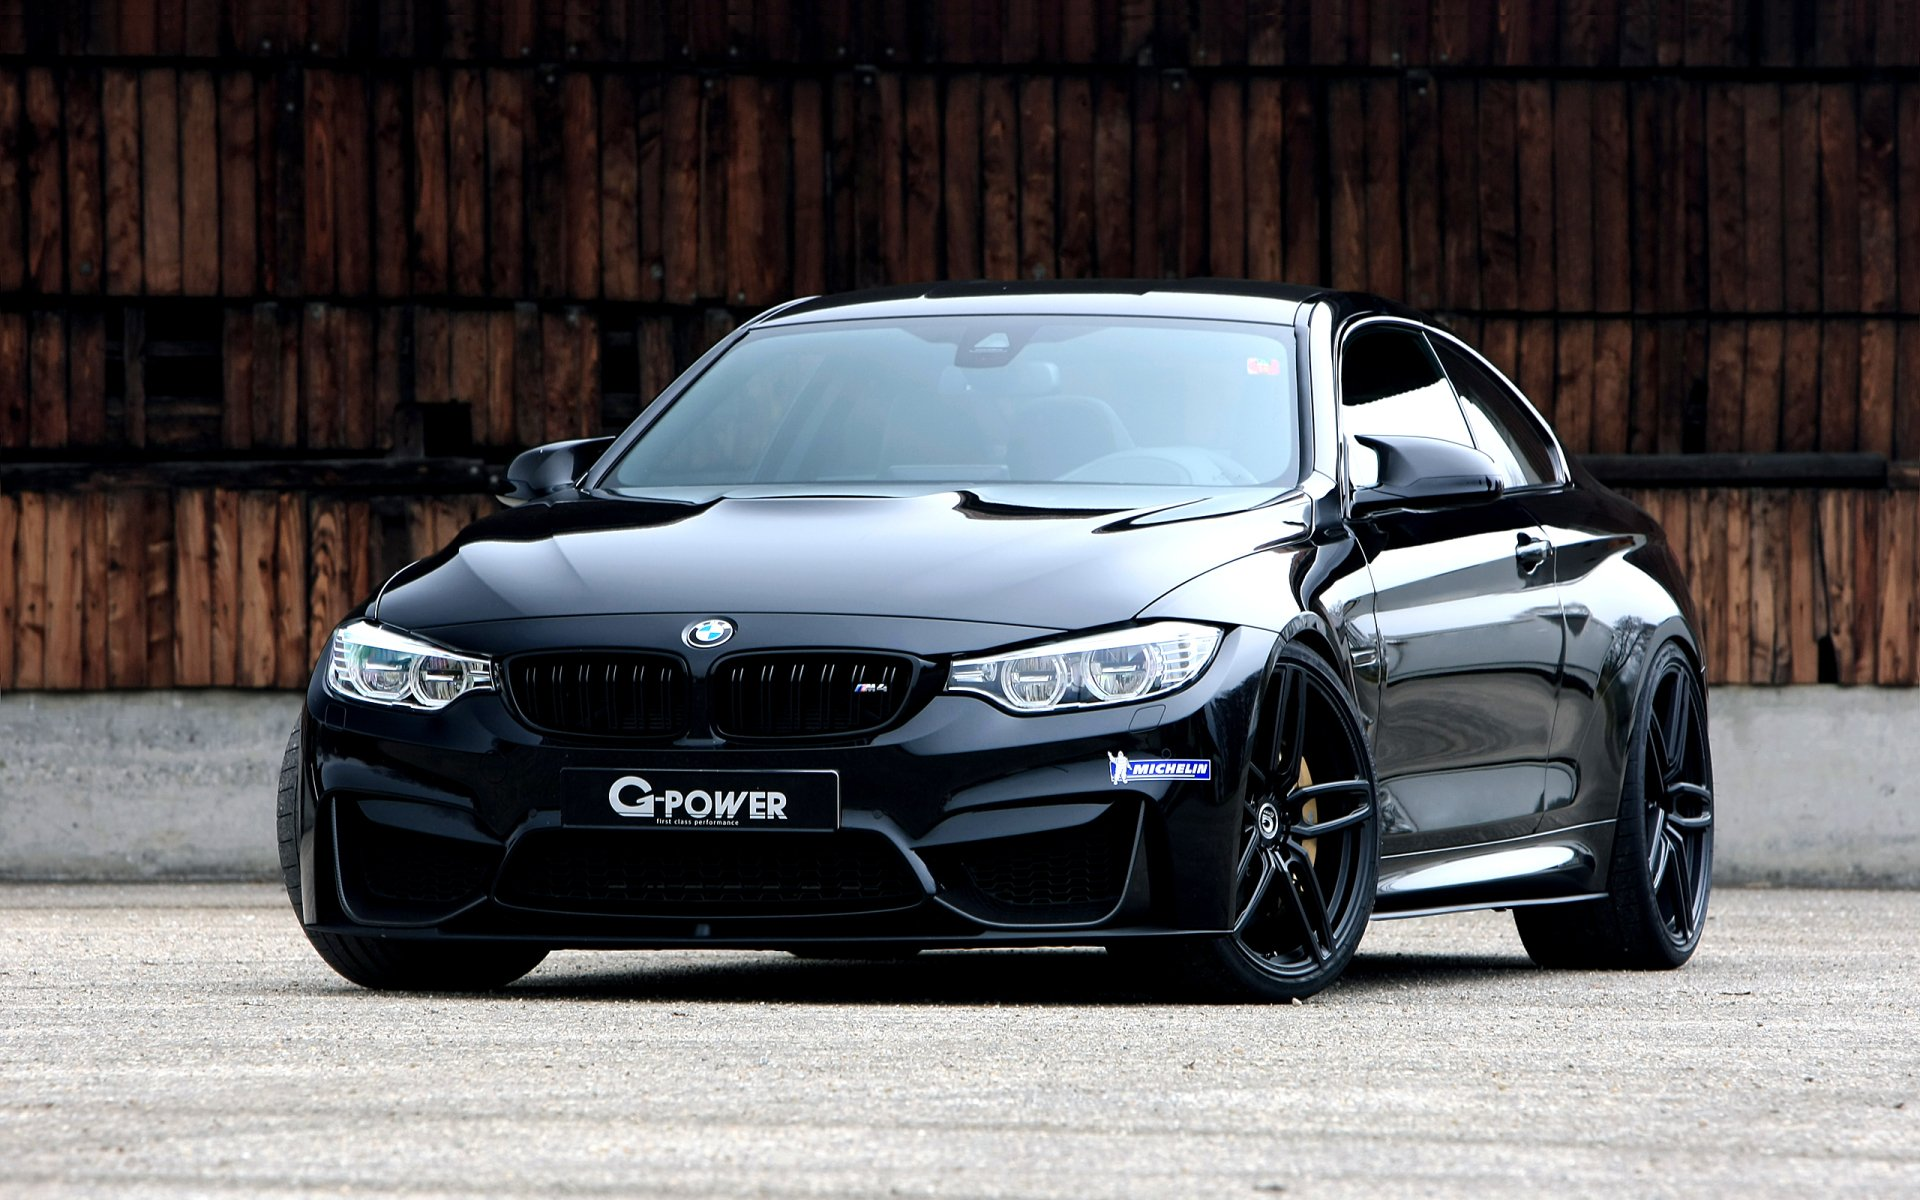 Vehicles - BMW M4  BMW Blue Car Car Vehicle Grand Tourer Wallpaper